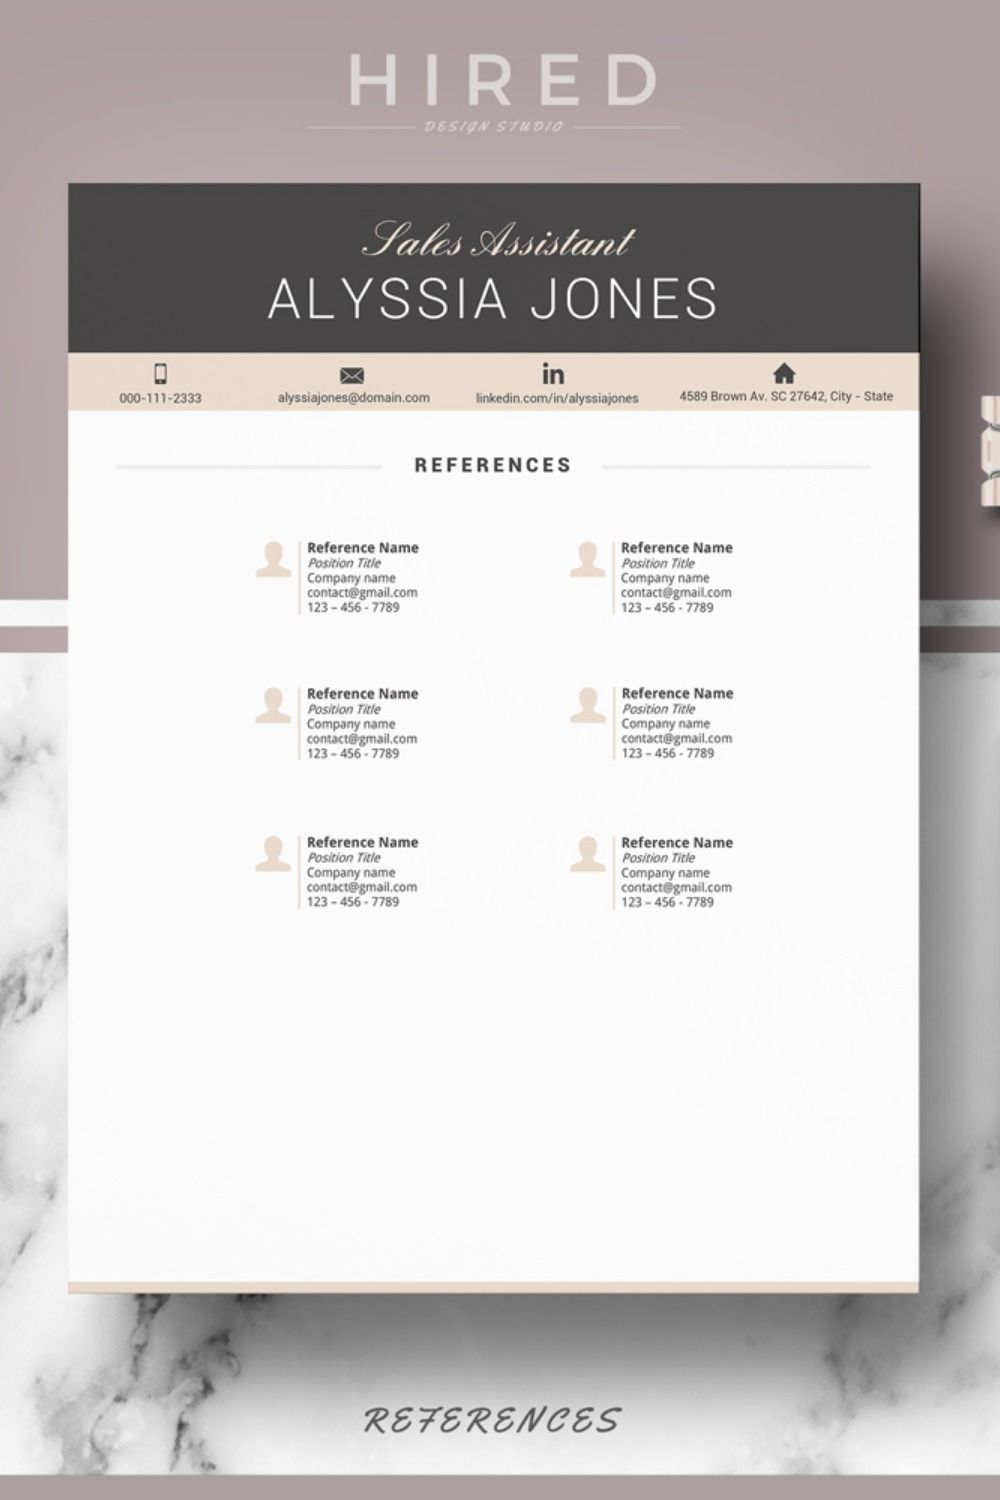 How To List References? Before you begin your job hunt